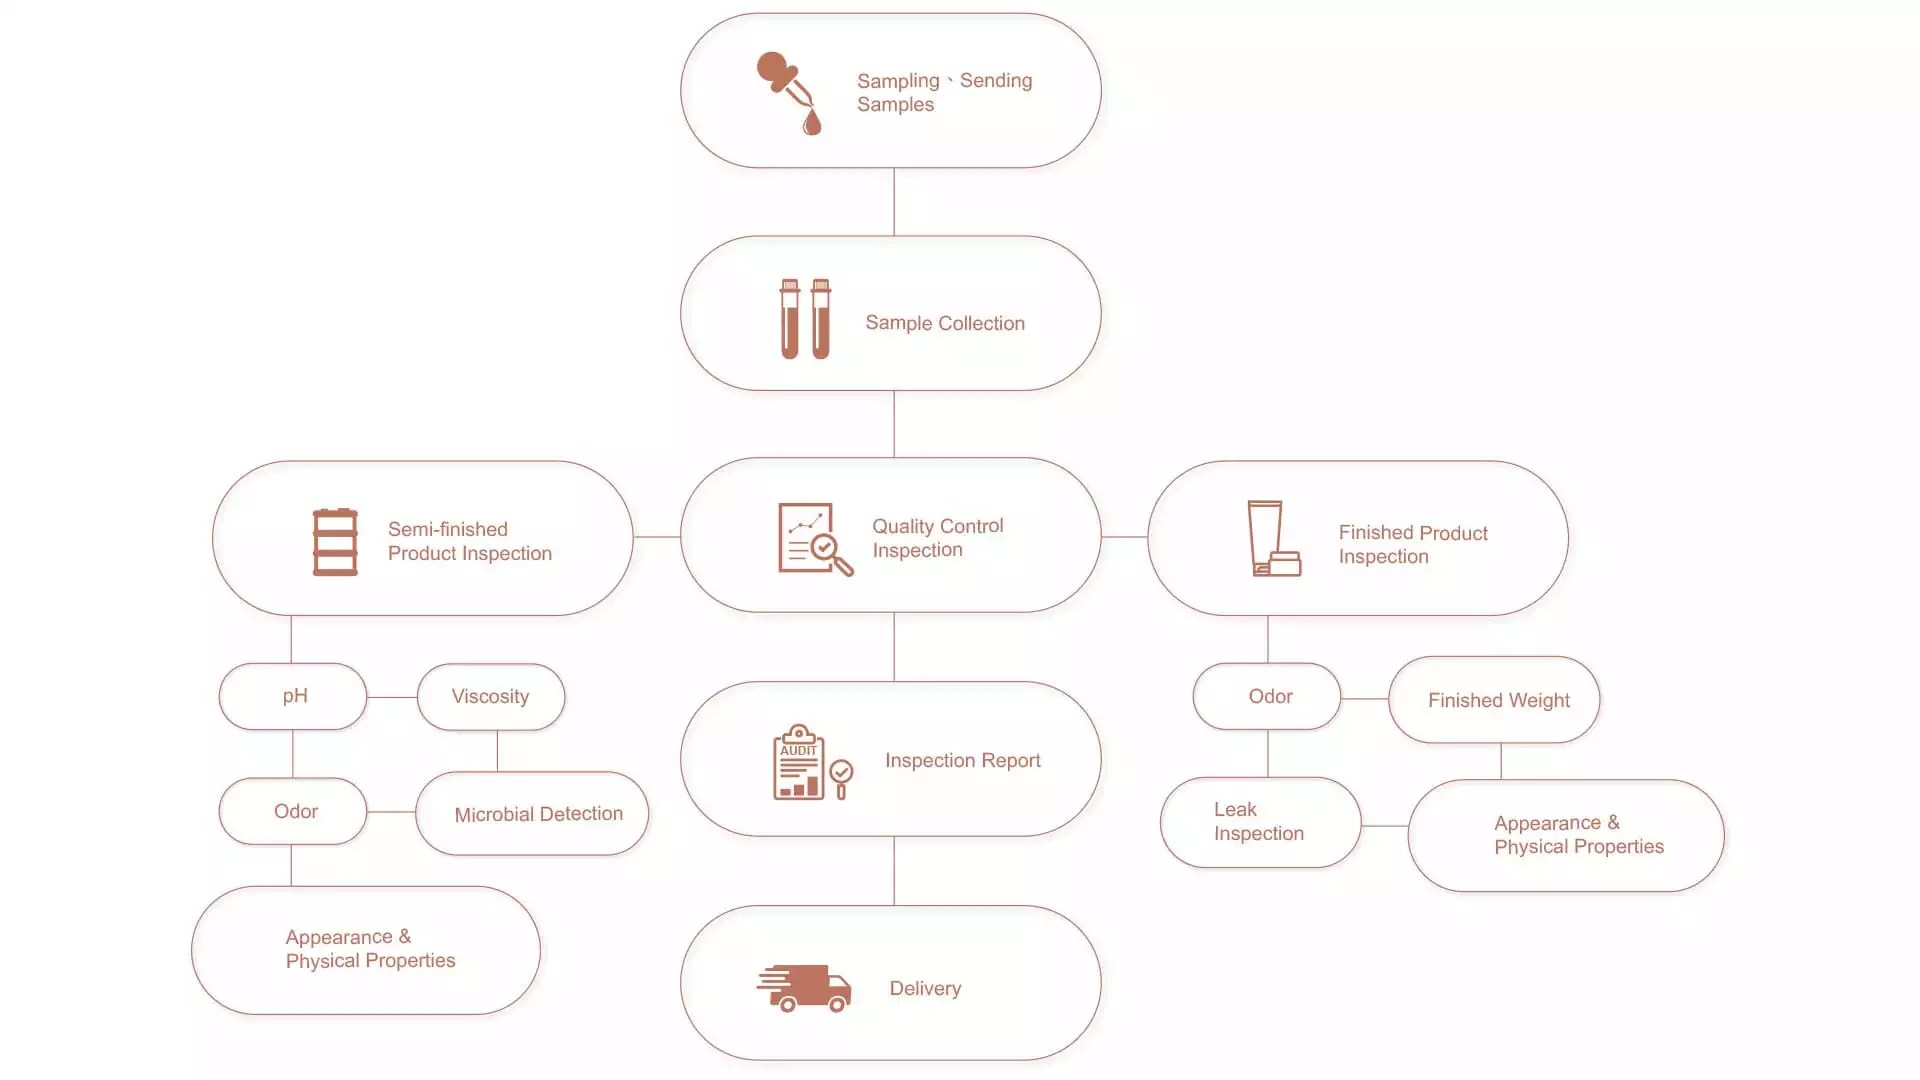 Production process flowchart for the manufacturing of OEM